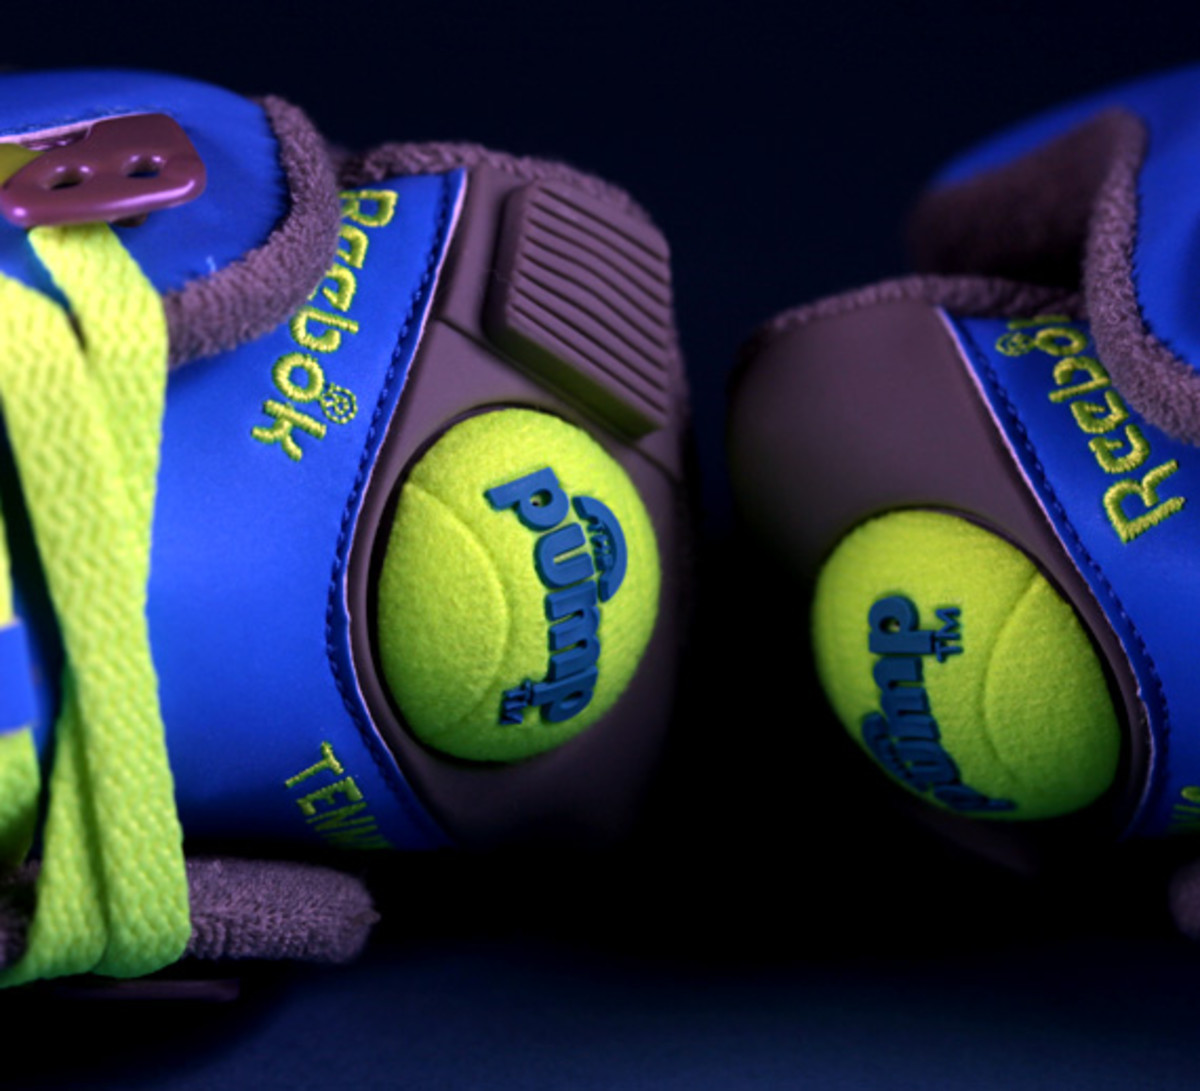 packer-shoes-reebok-court-victory-pump-us-open-13